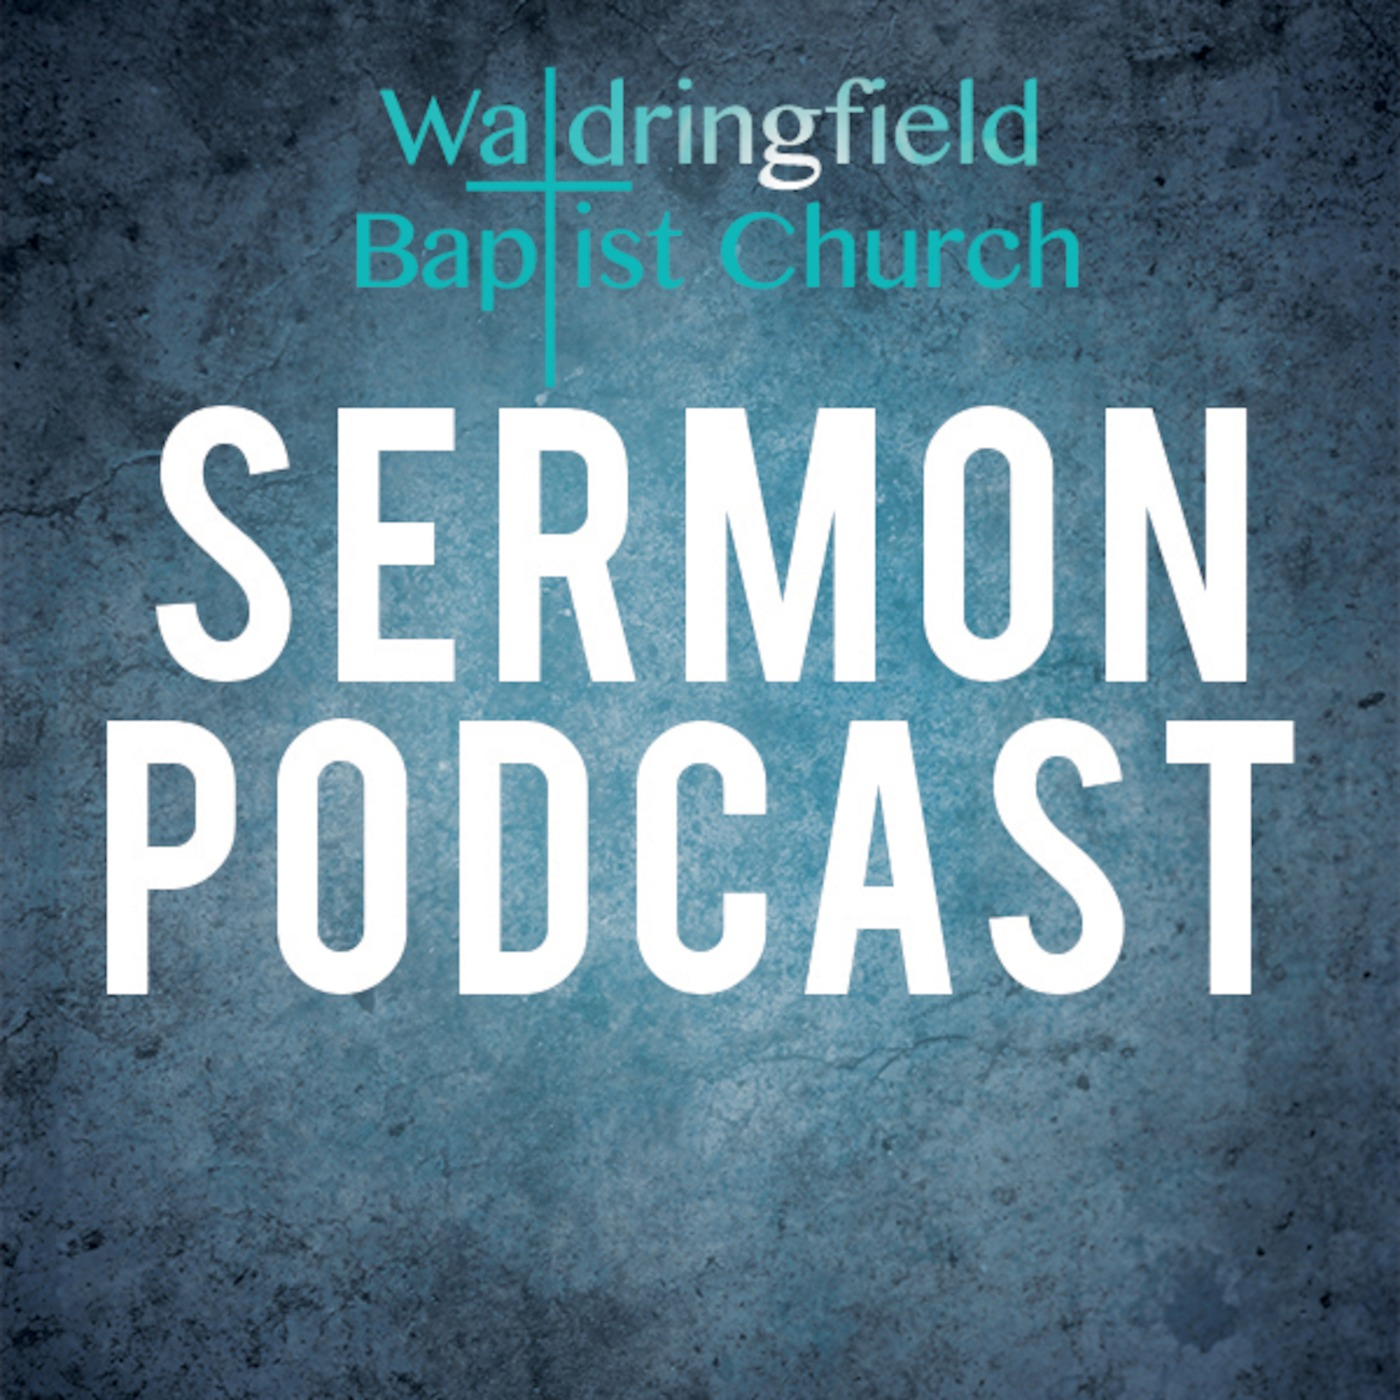 Waldringfield Baptist Church Podcast